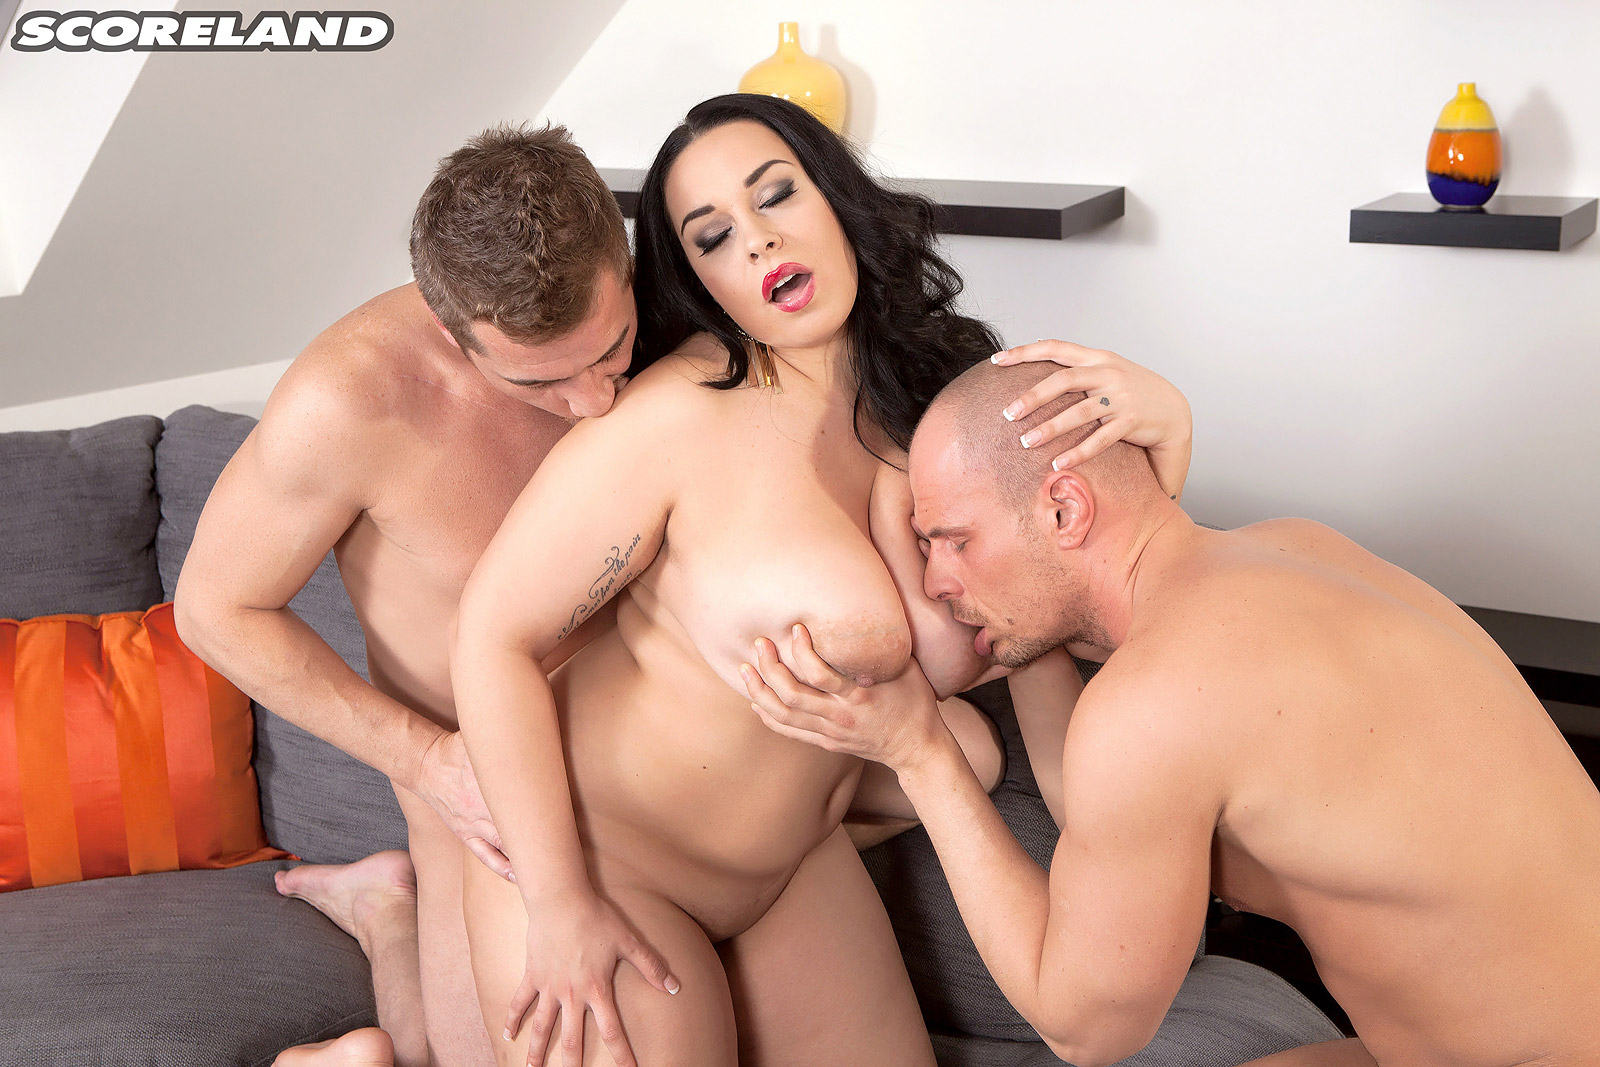 scoreland-i-fucked-your-wife